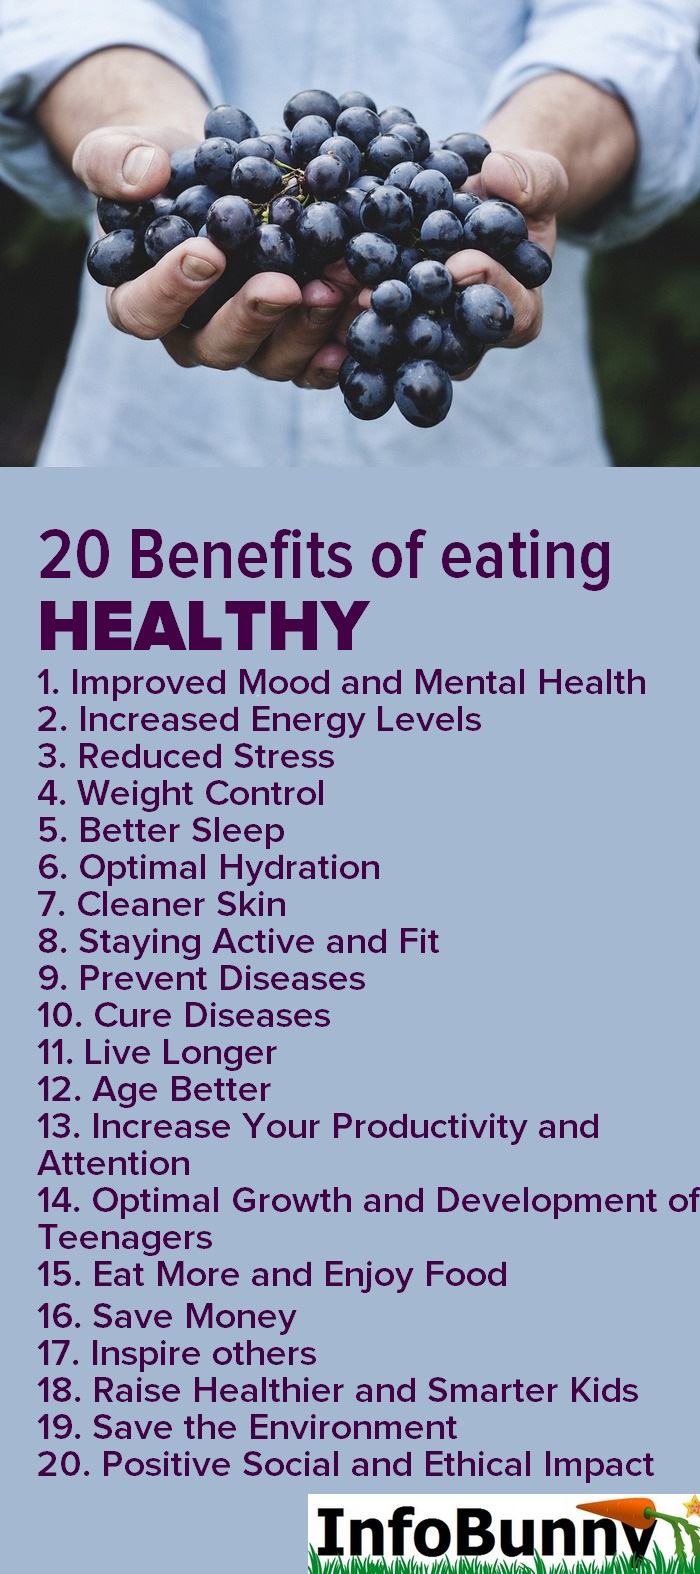 20 Benefits of healthy eating